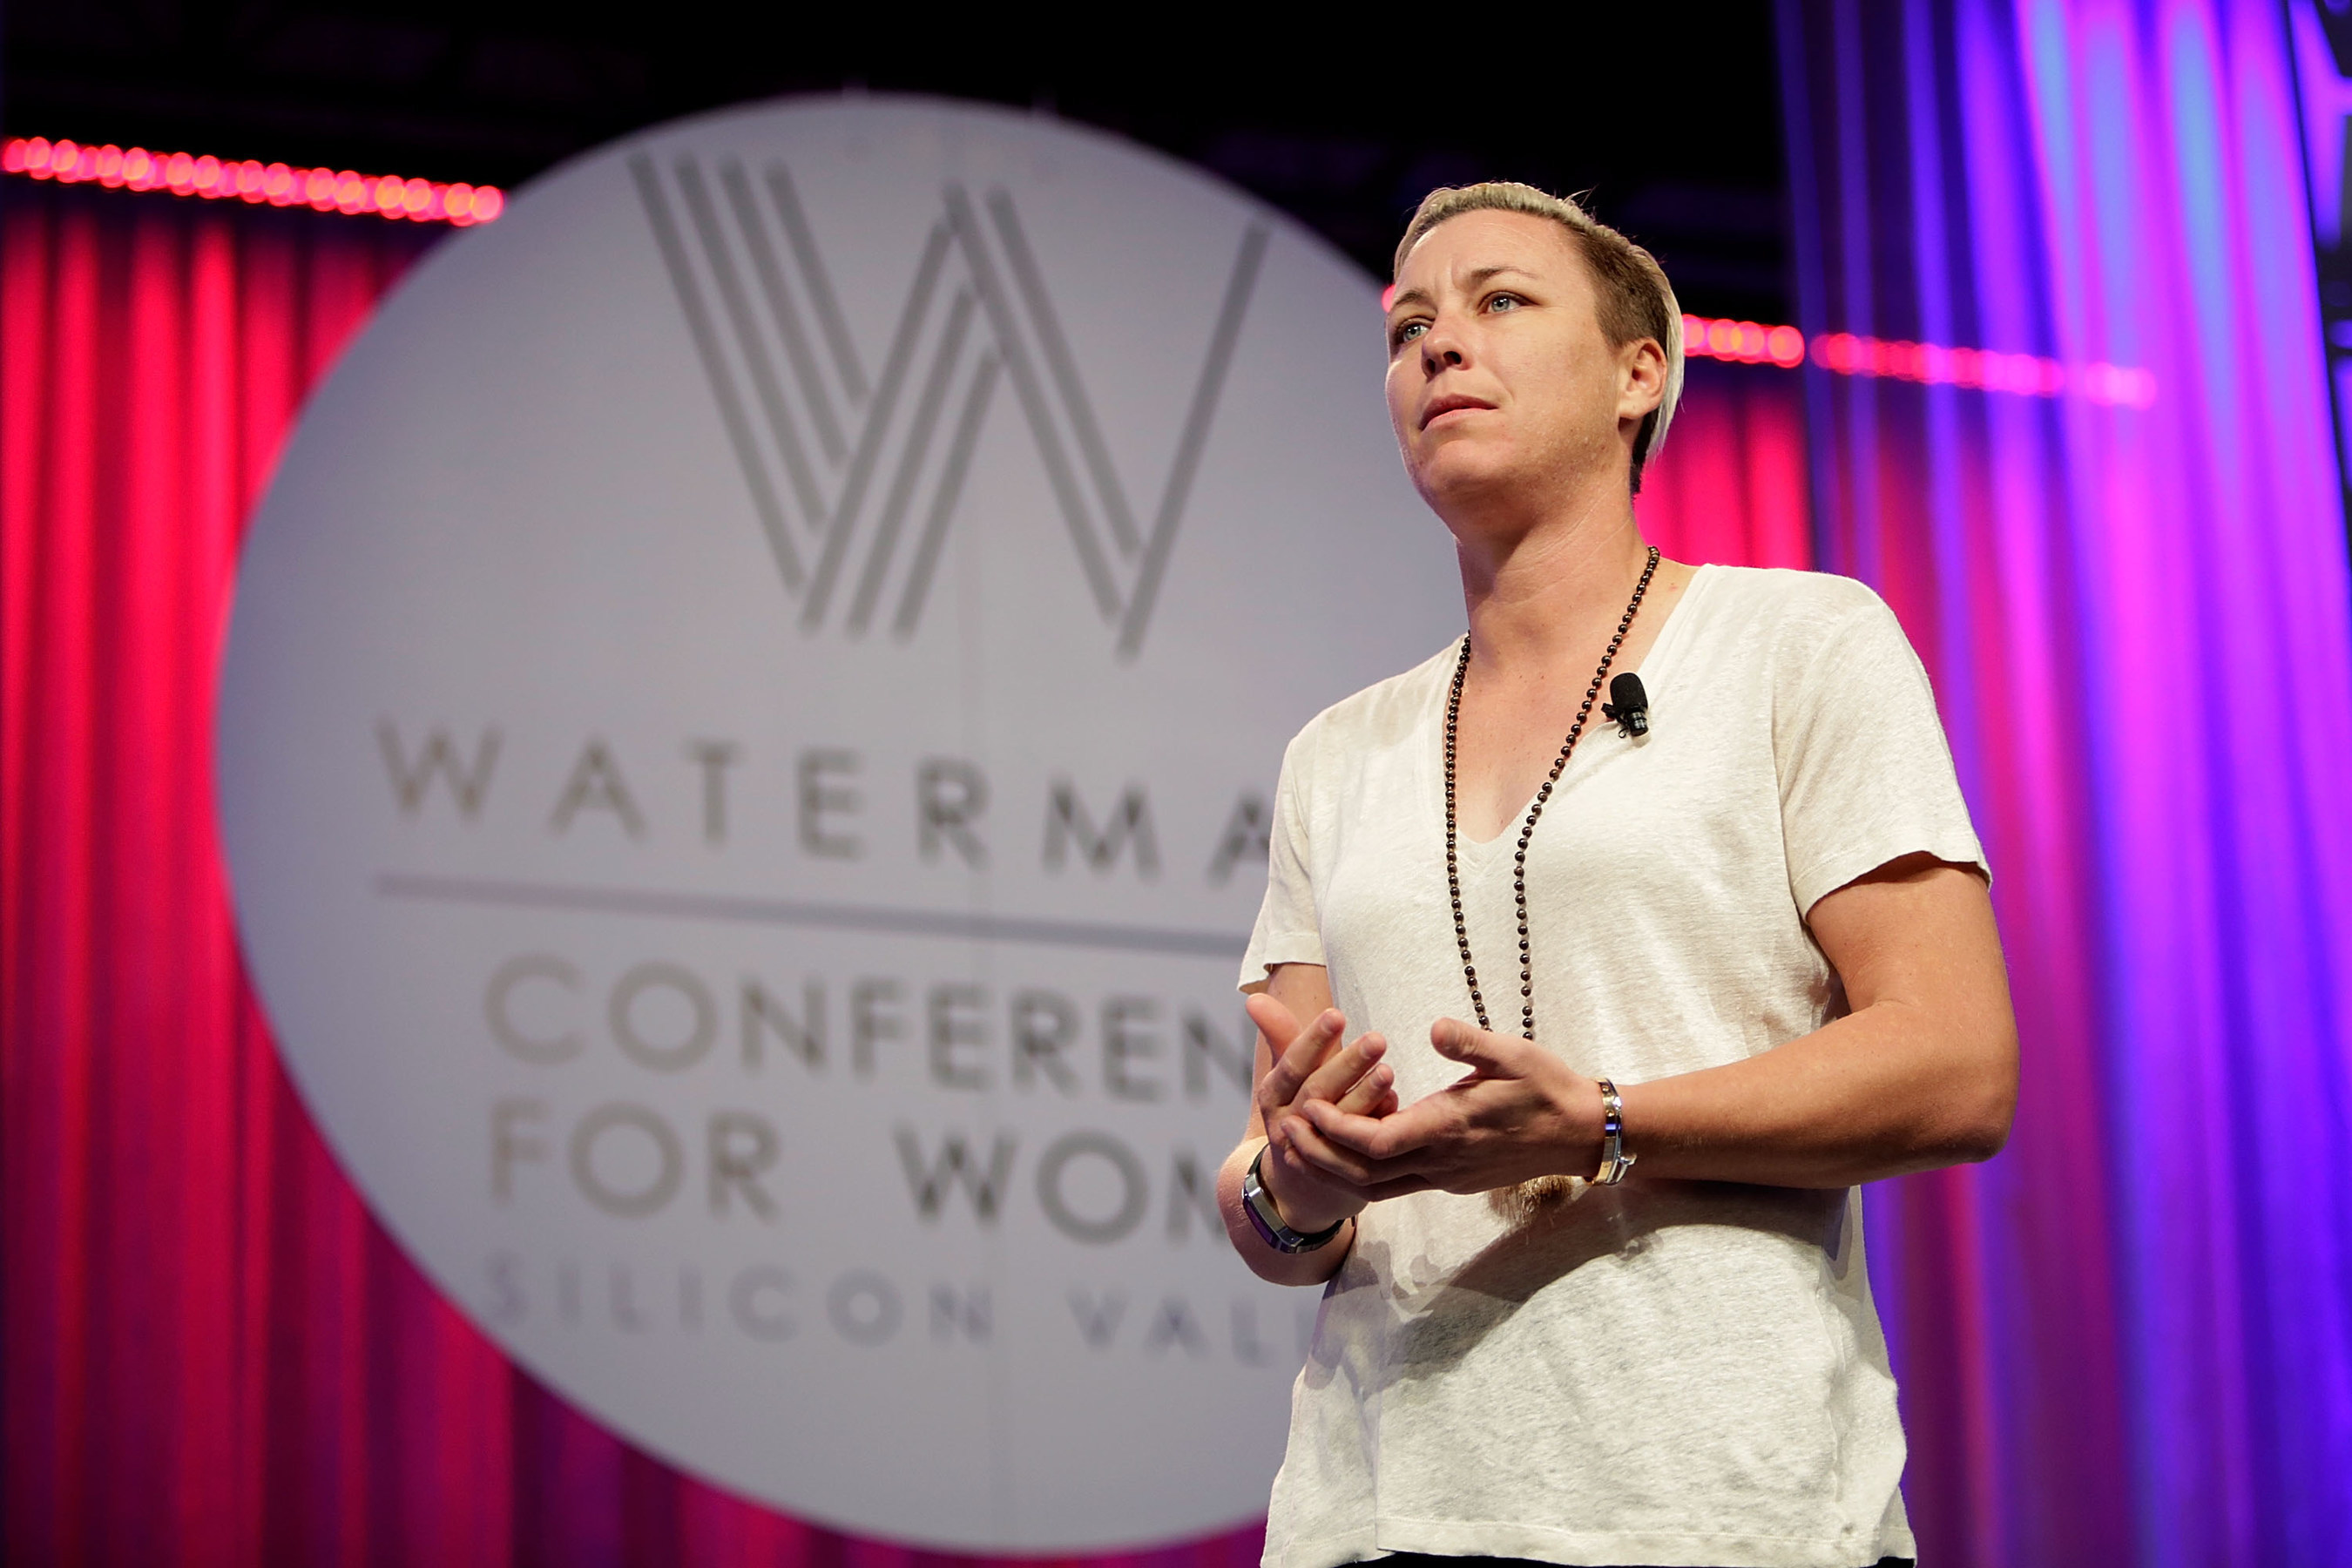 San Jose, CA, APRIL 21, 2016 - Retired women's soccer superstar Abby Wambach told 6,500 Watermark Conference for Women Silicon Valley attendees that she is dedicating her post-game career to a new goal - achieving gender pay equity. Attendees also heard from Mindy Kaling, actor, producer, director and best-selling author, John Jacobs, co-founder and chief creative optimist of the Life is good(R) company, Leila Janah, CEO, Sama and Laxmi, and award-winning social entrepreneur and author, Cindi Leive, editor-in-chief of Glamour, and Pattie Sellers, executive director of Fortune MPW Live Content, Time Inc. PHOTO BY MARLA AUFMUTH/GETTY IMAGES FOR WATERMARK